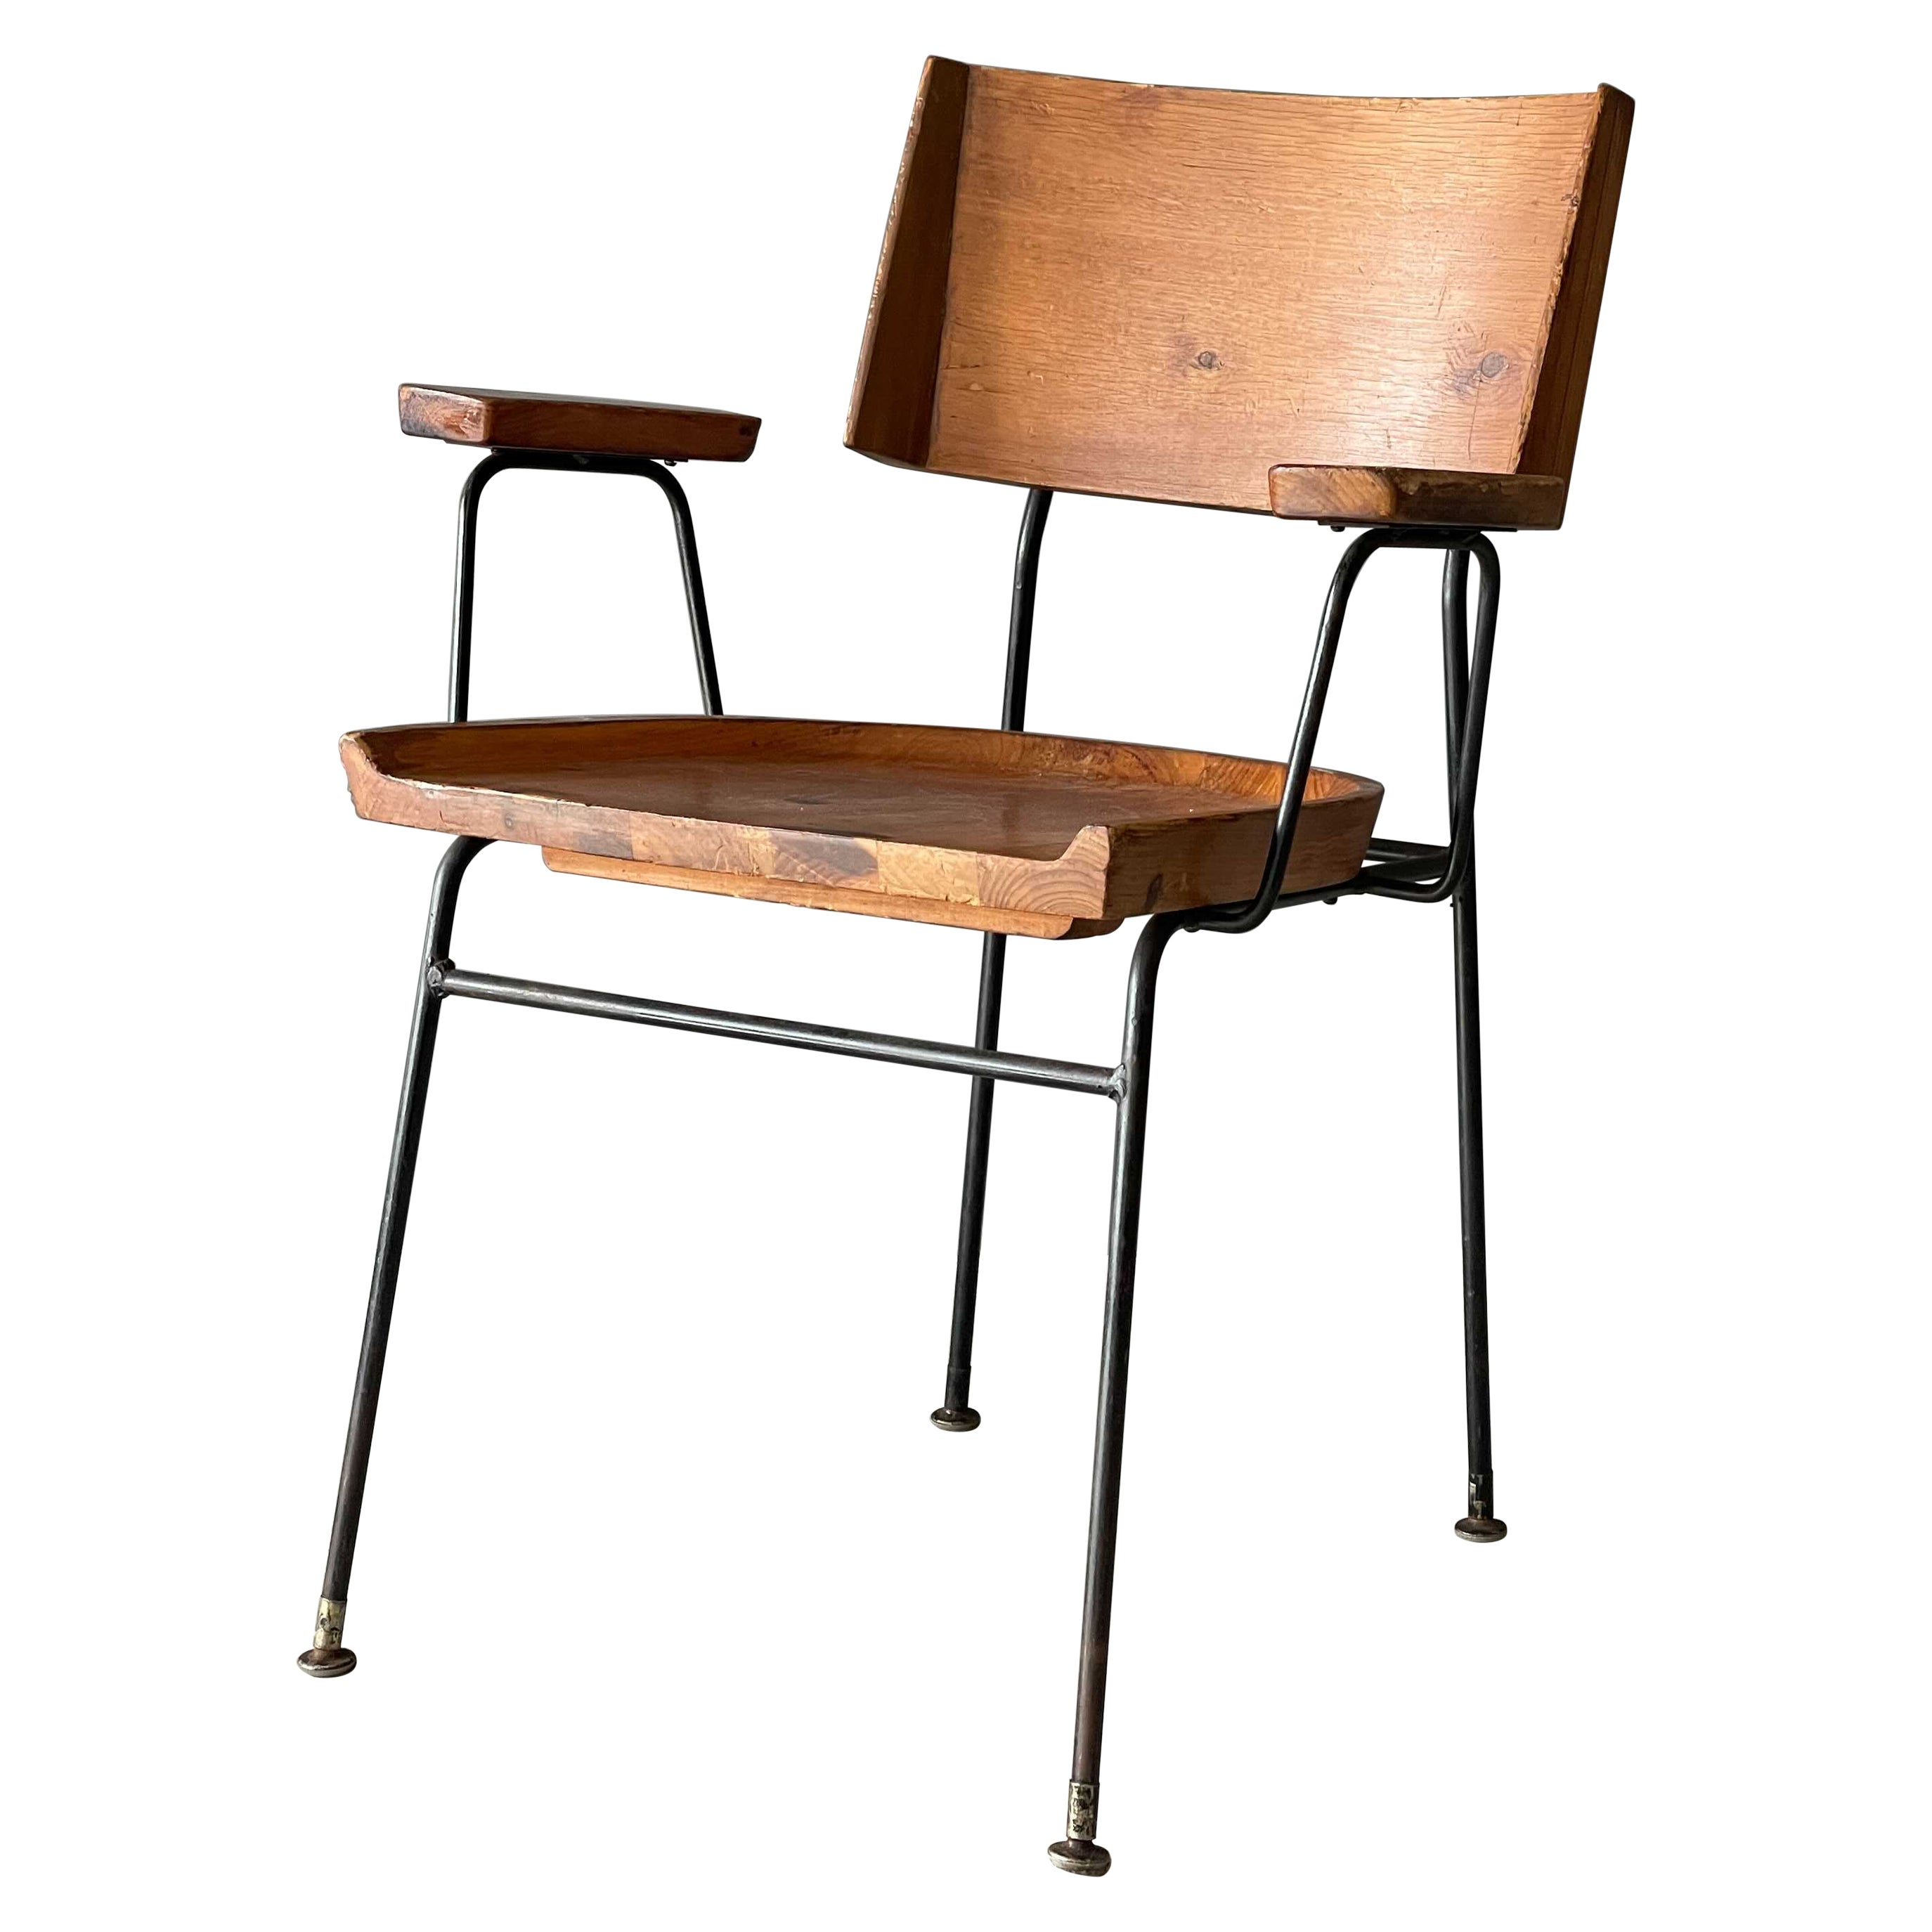 Arthur Umanoff, Arm Chair, Solid Pine, Lacquered Iron, America, 1950s